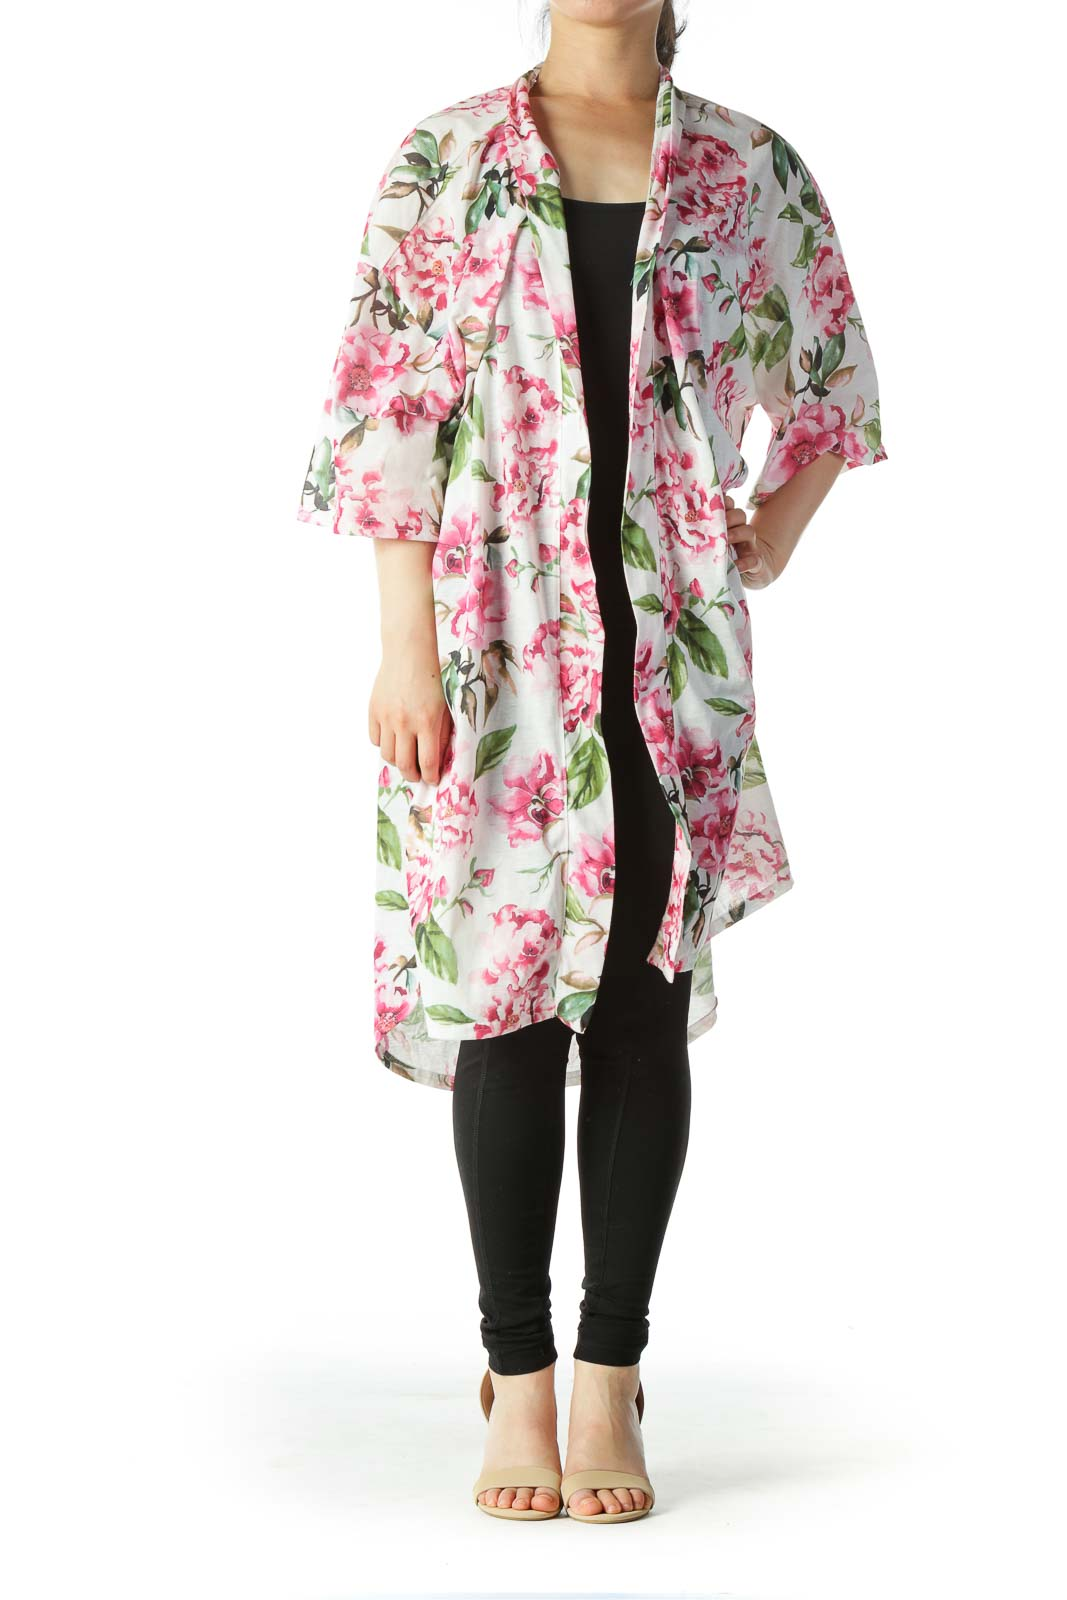 Multicolored Pink-Floral-Print Short-Sleeve Cardigan